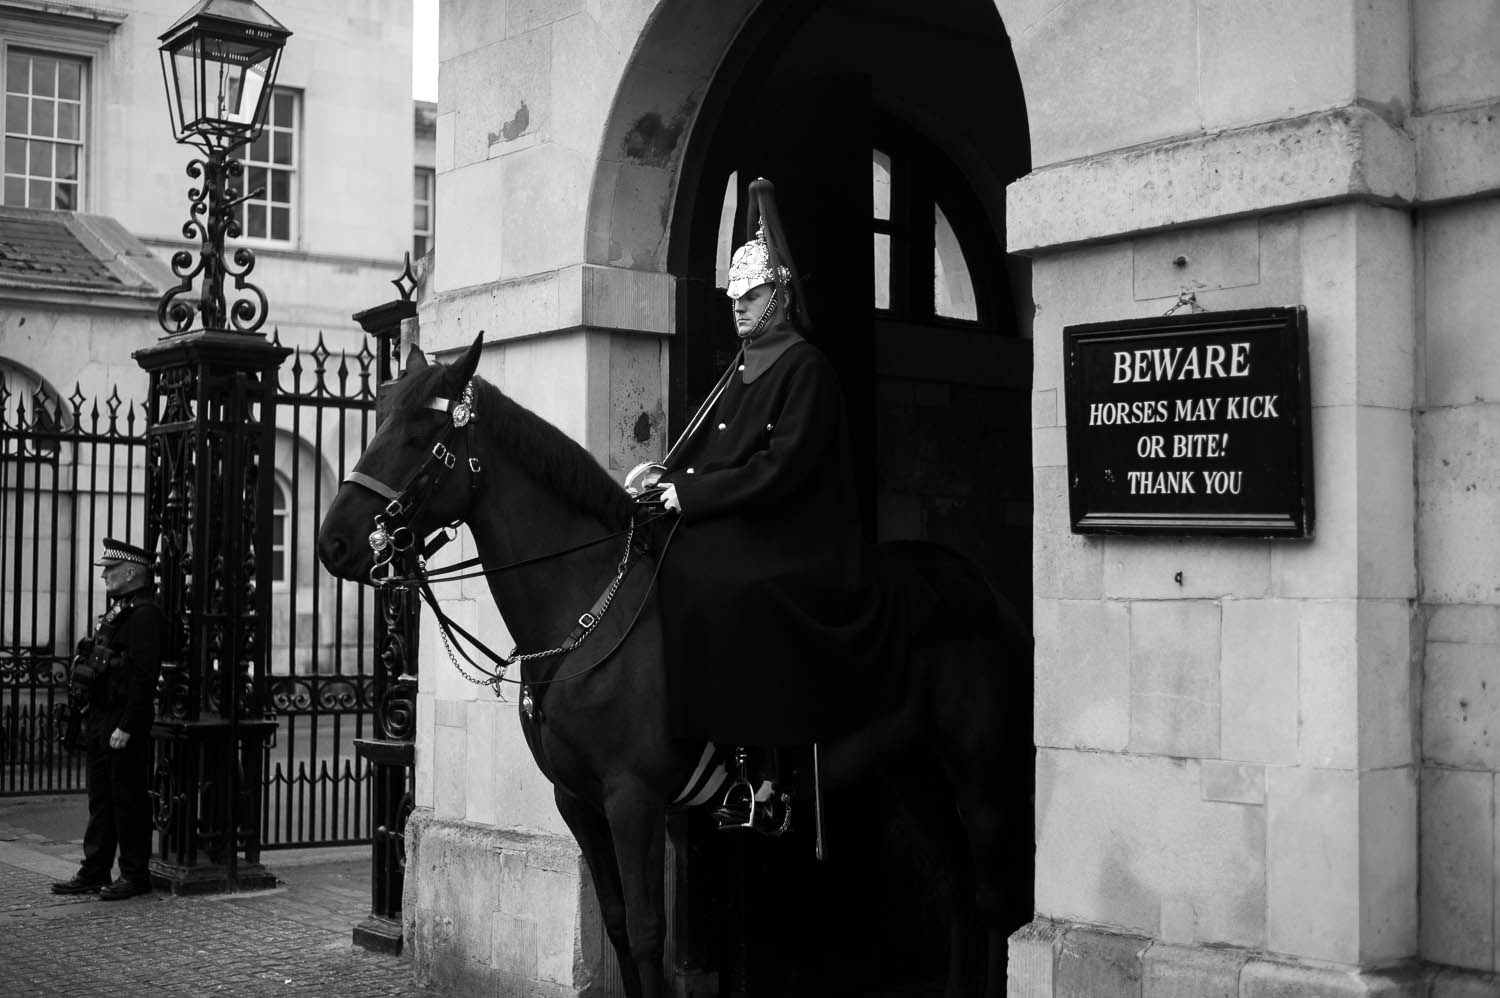 An officer seated on horseback in London